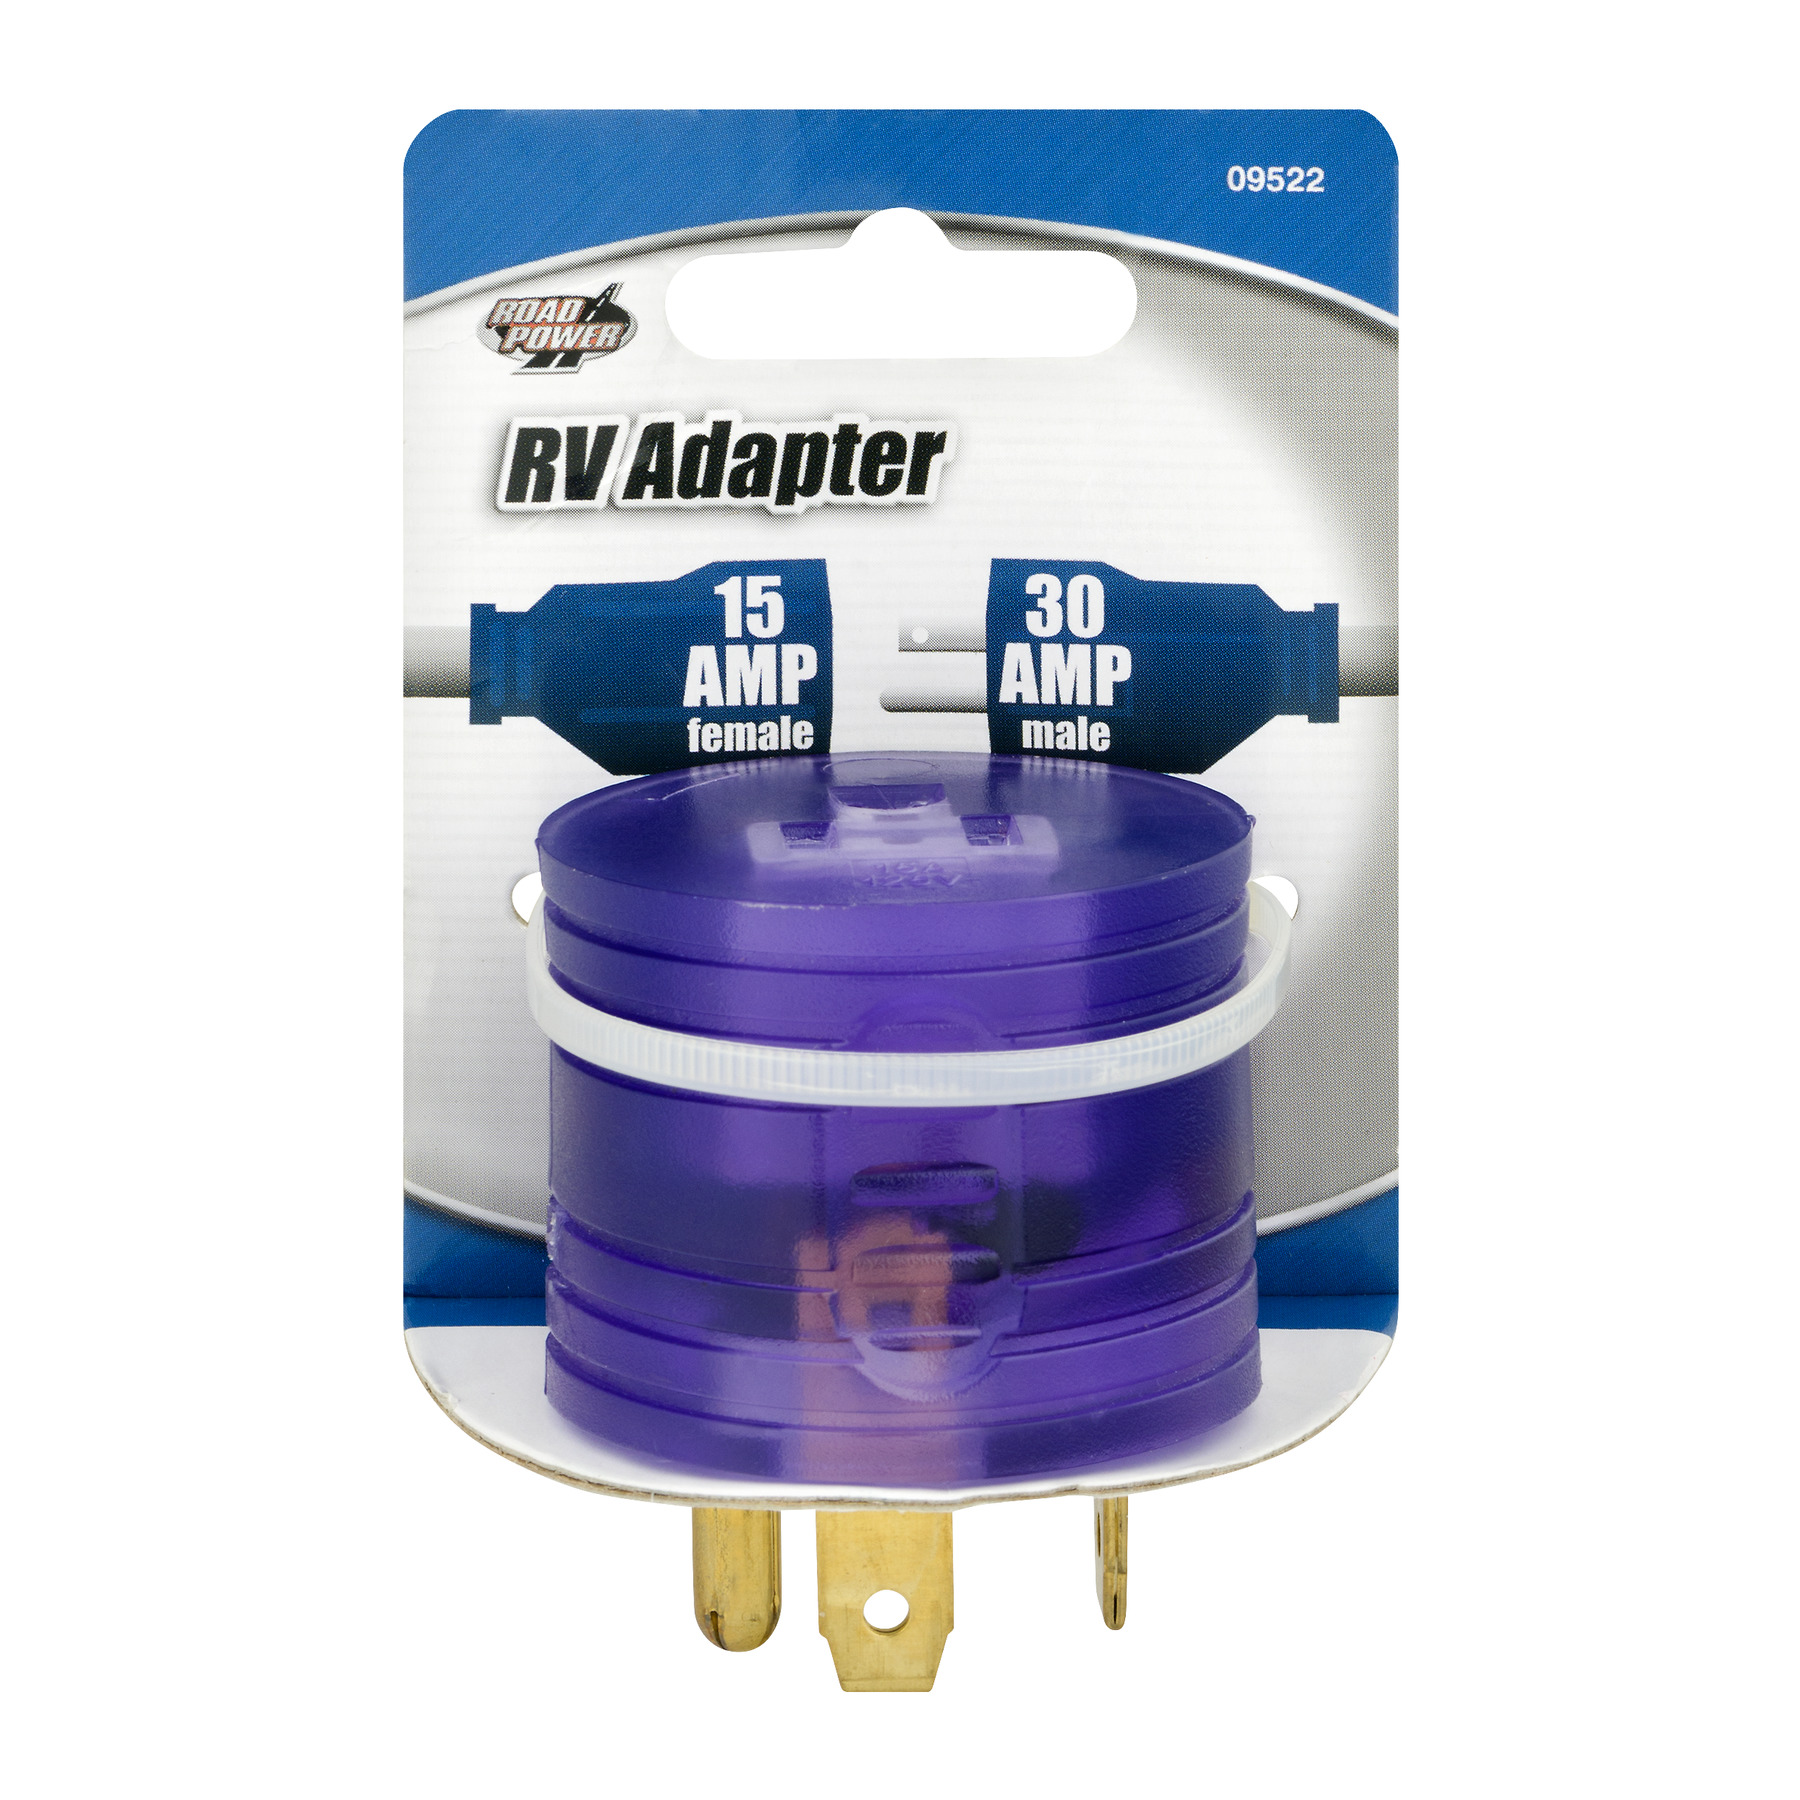 Road Power 30-15-Amp RV Power Adapter